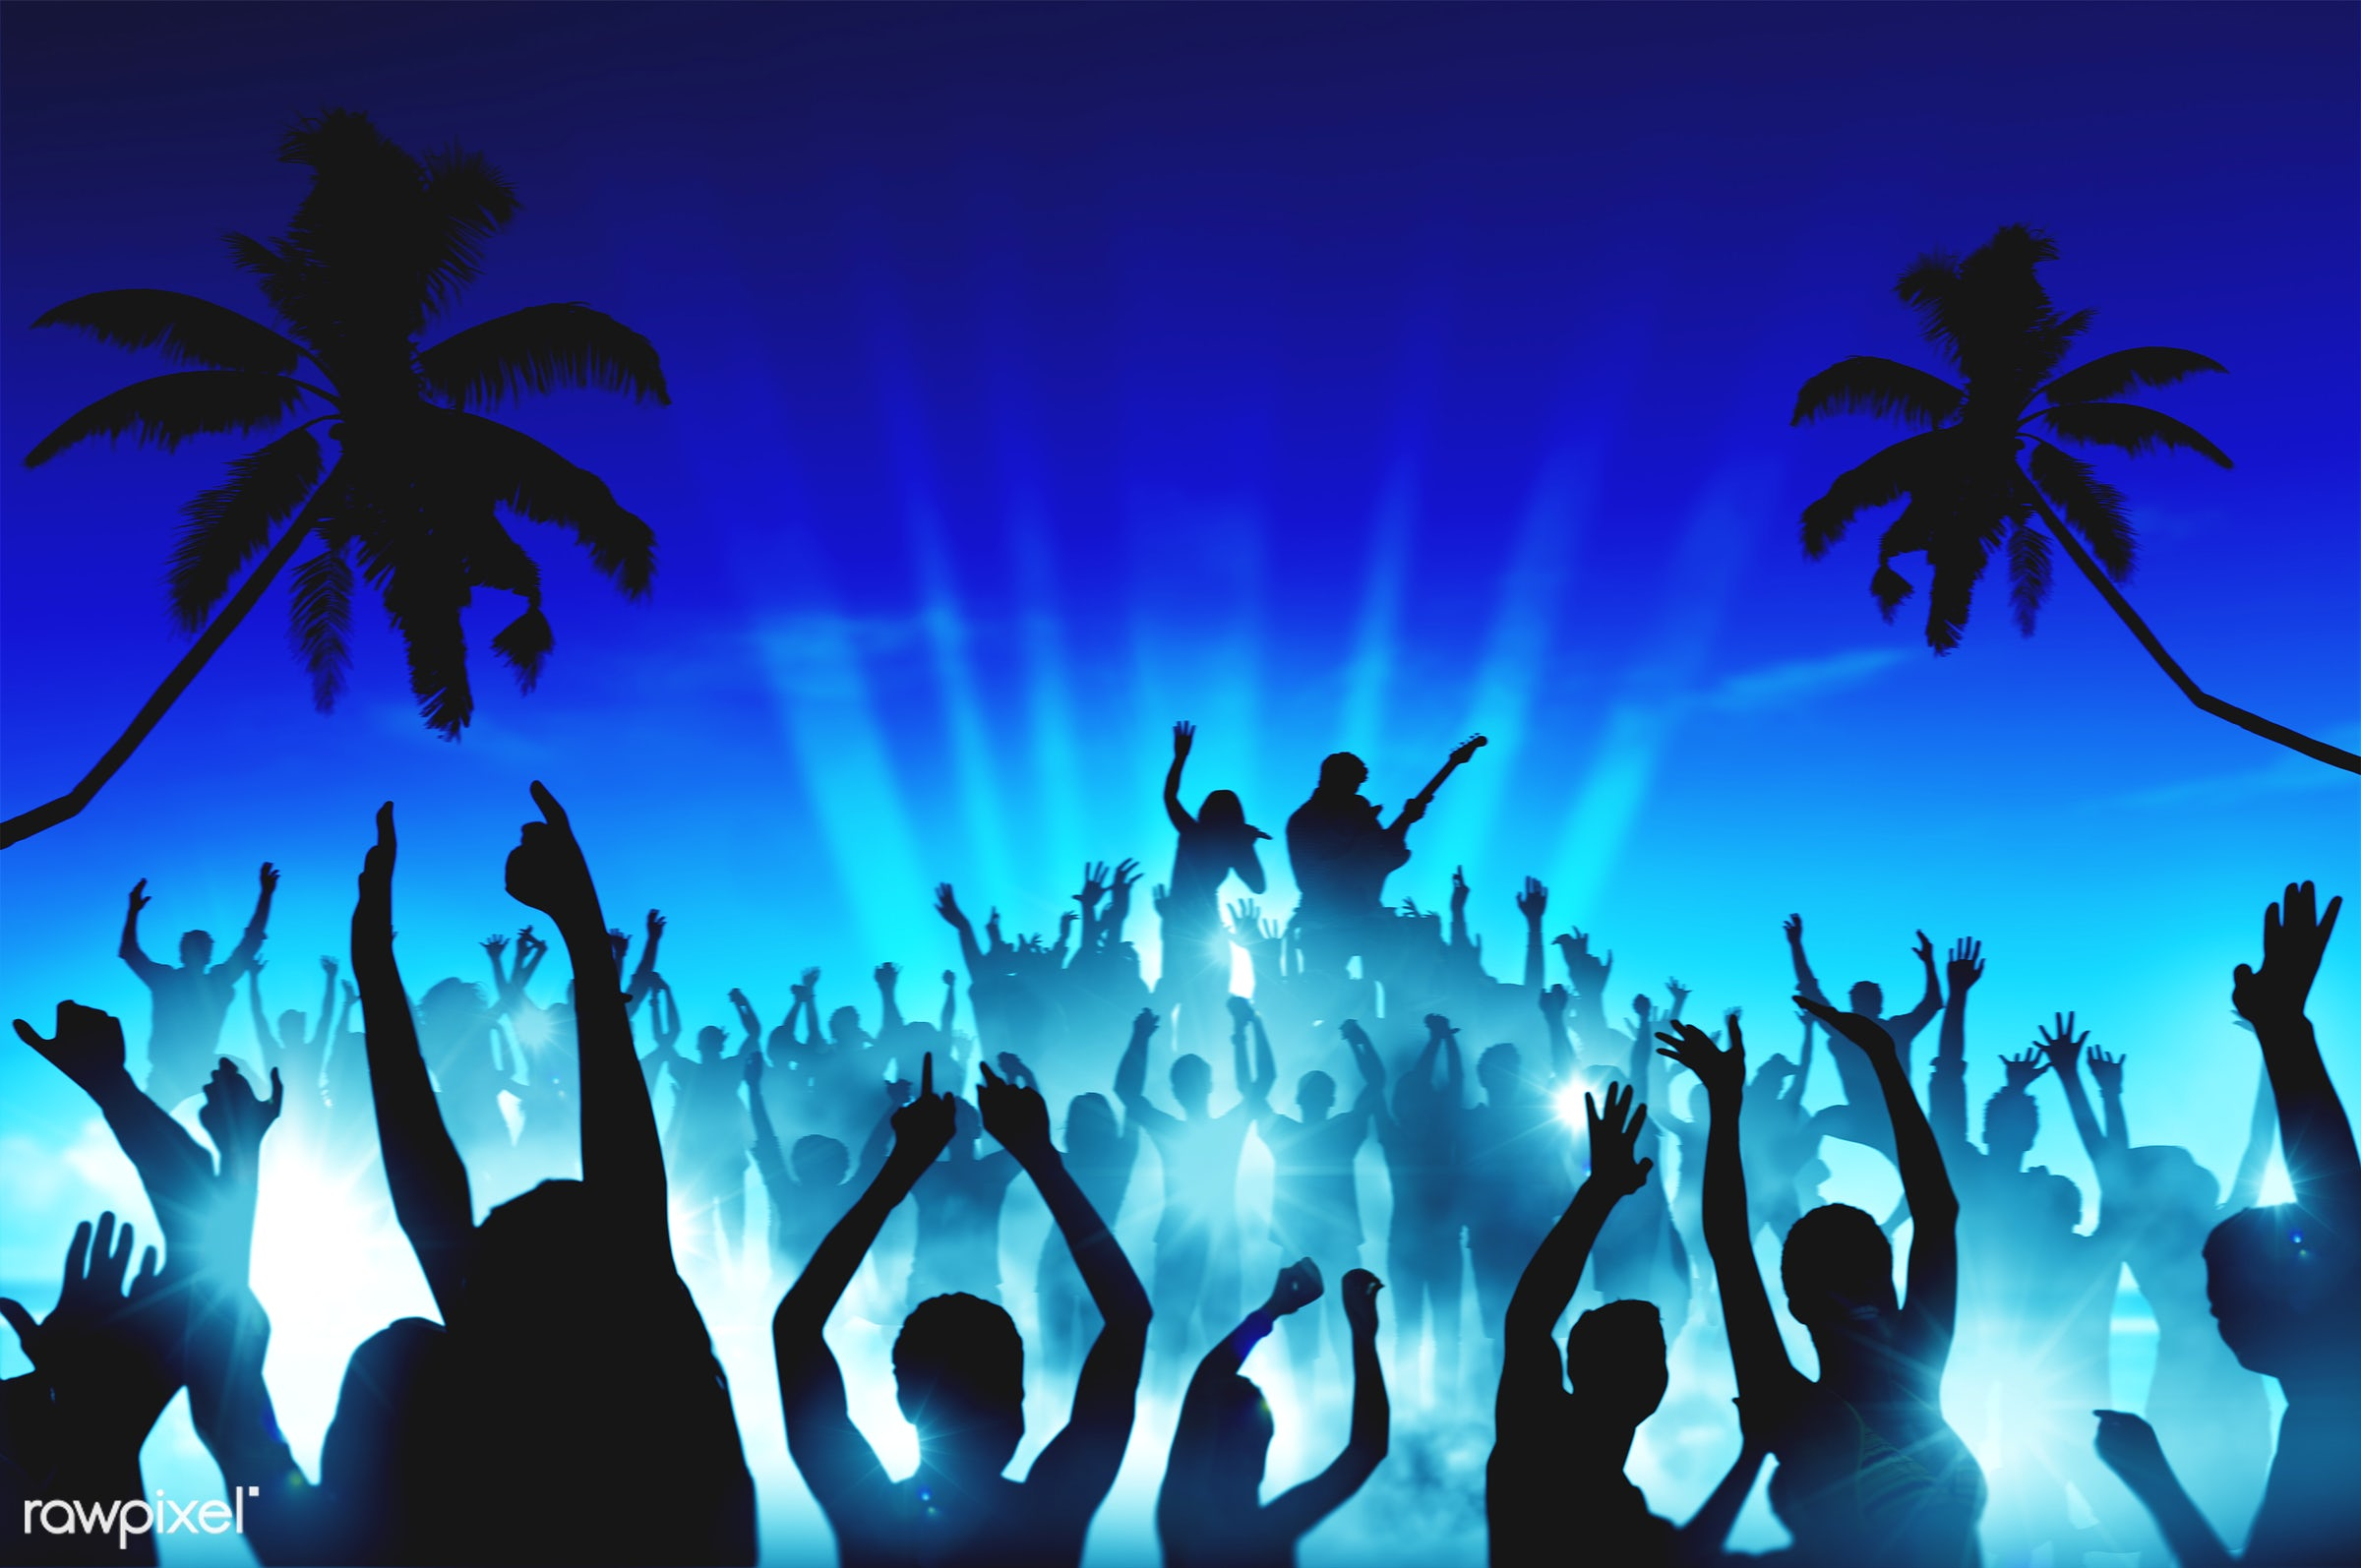 applauding, arms outstretched, arms raised, audience, back lit, beach, blue, celebration, cheering, coconut palm tree,...